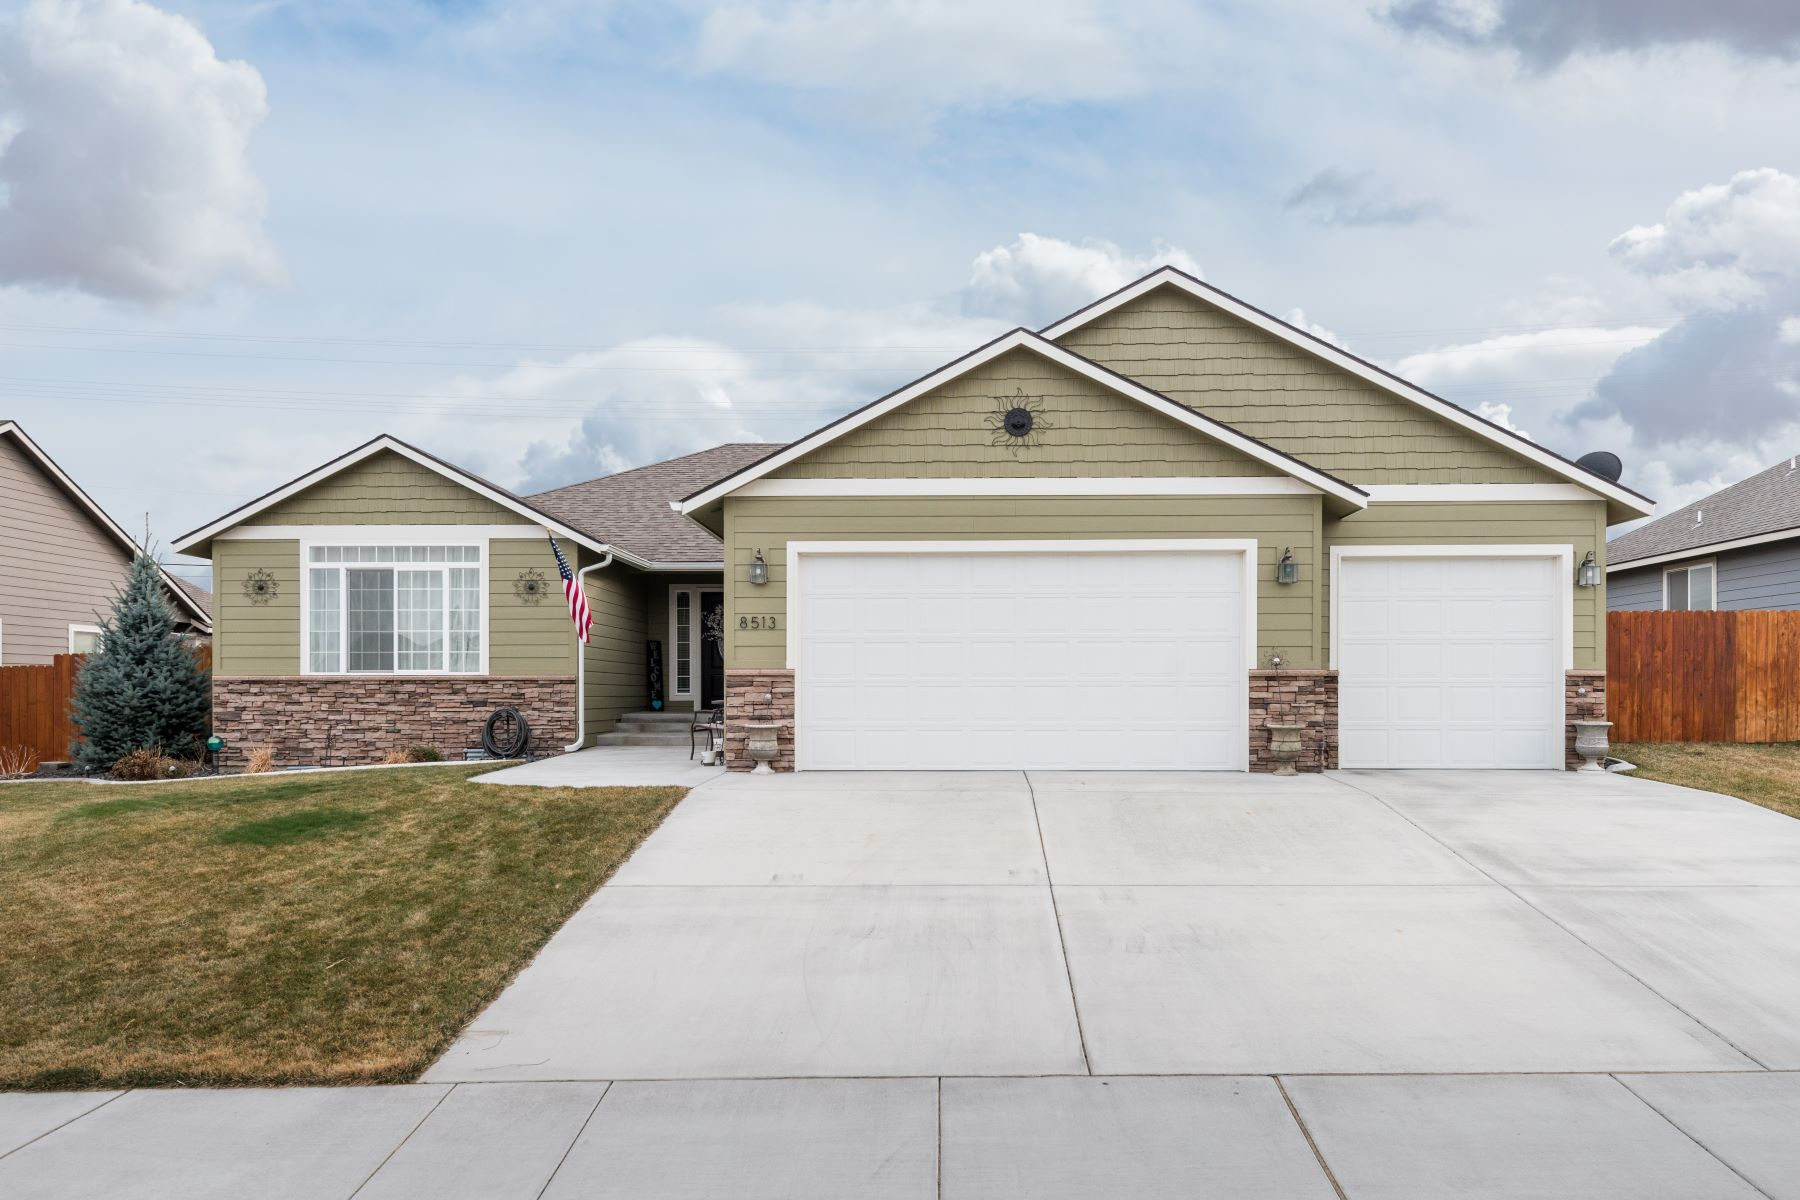 Single Family Home for Sale at Hansen Park Rambler 8513 West 9th Avenue, Kennewick, Washington, 99336 United States